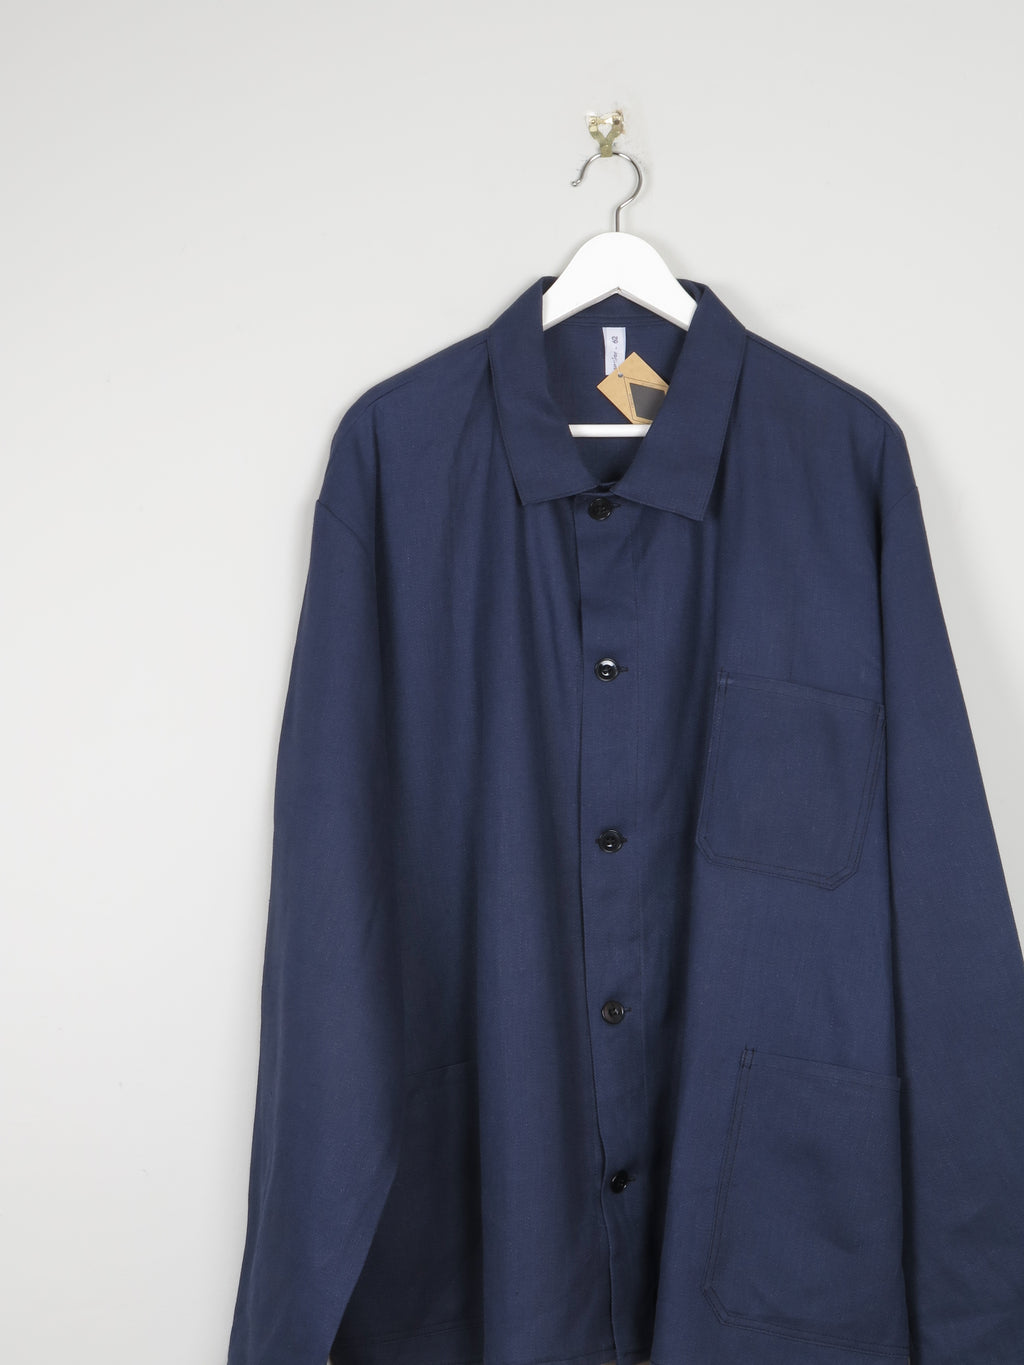 Mens Navy Work Jacket Unworn XL